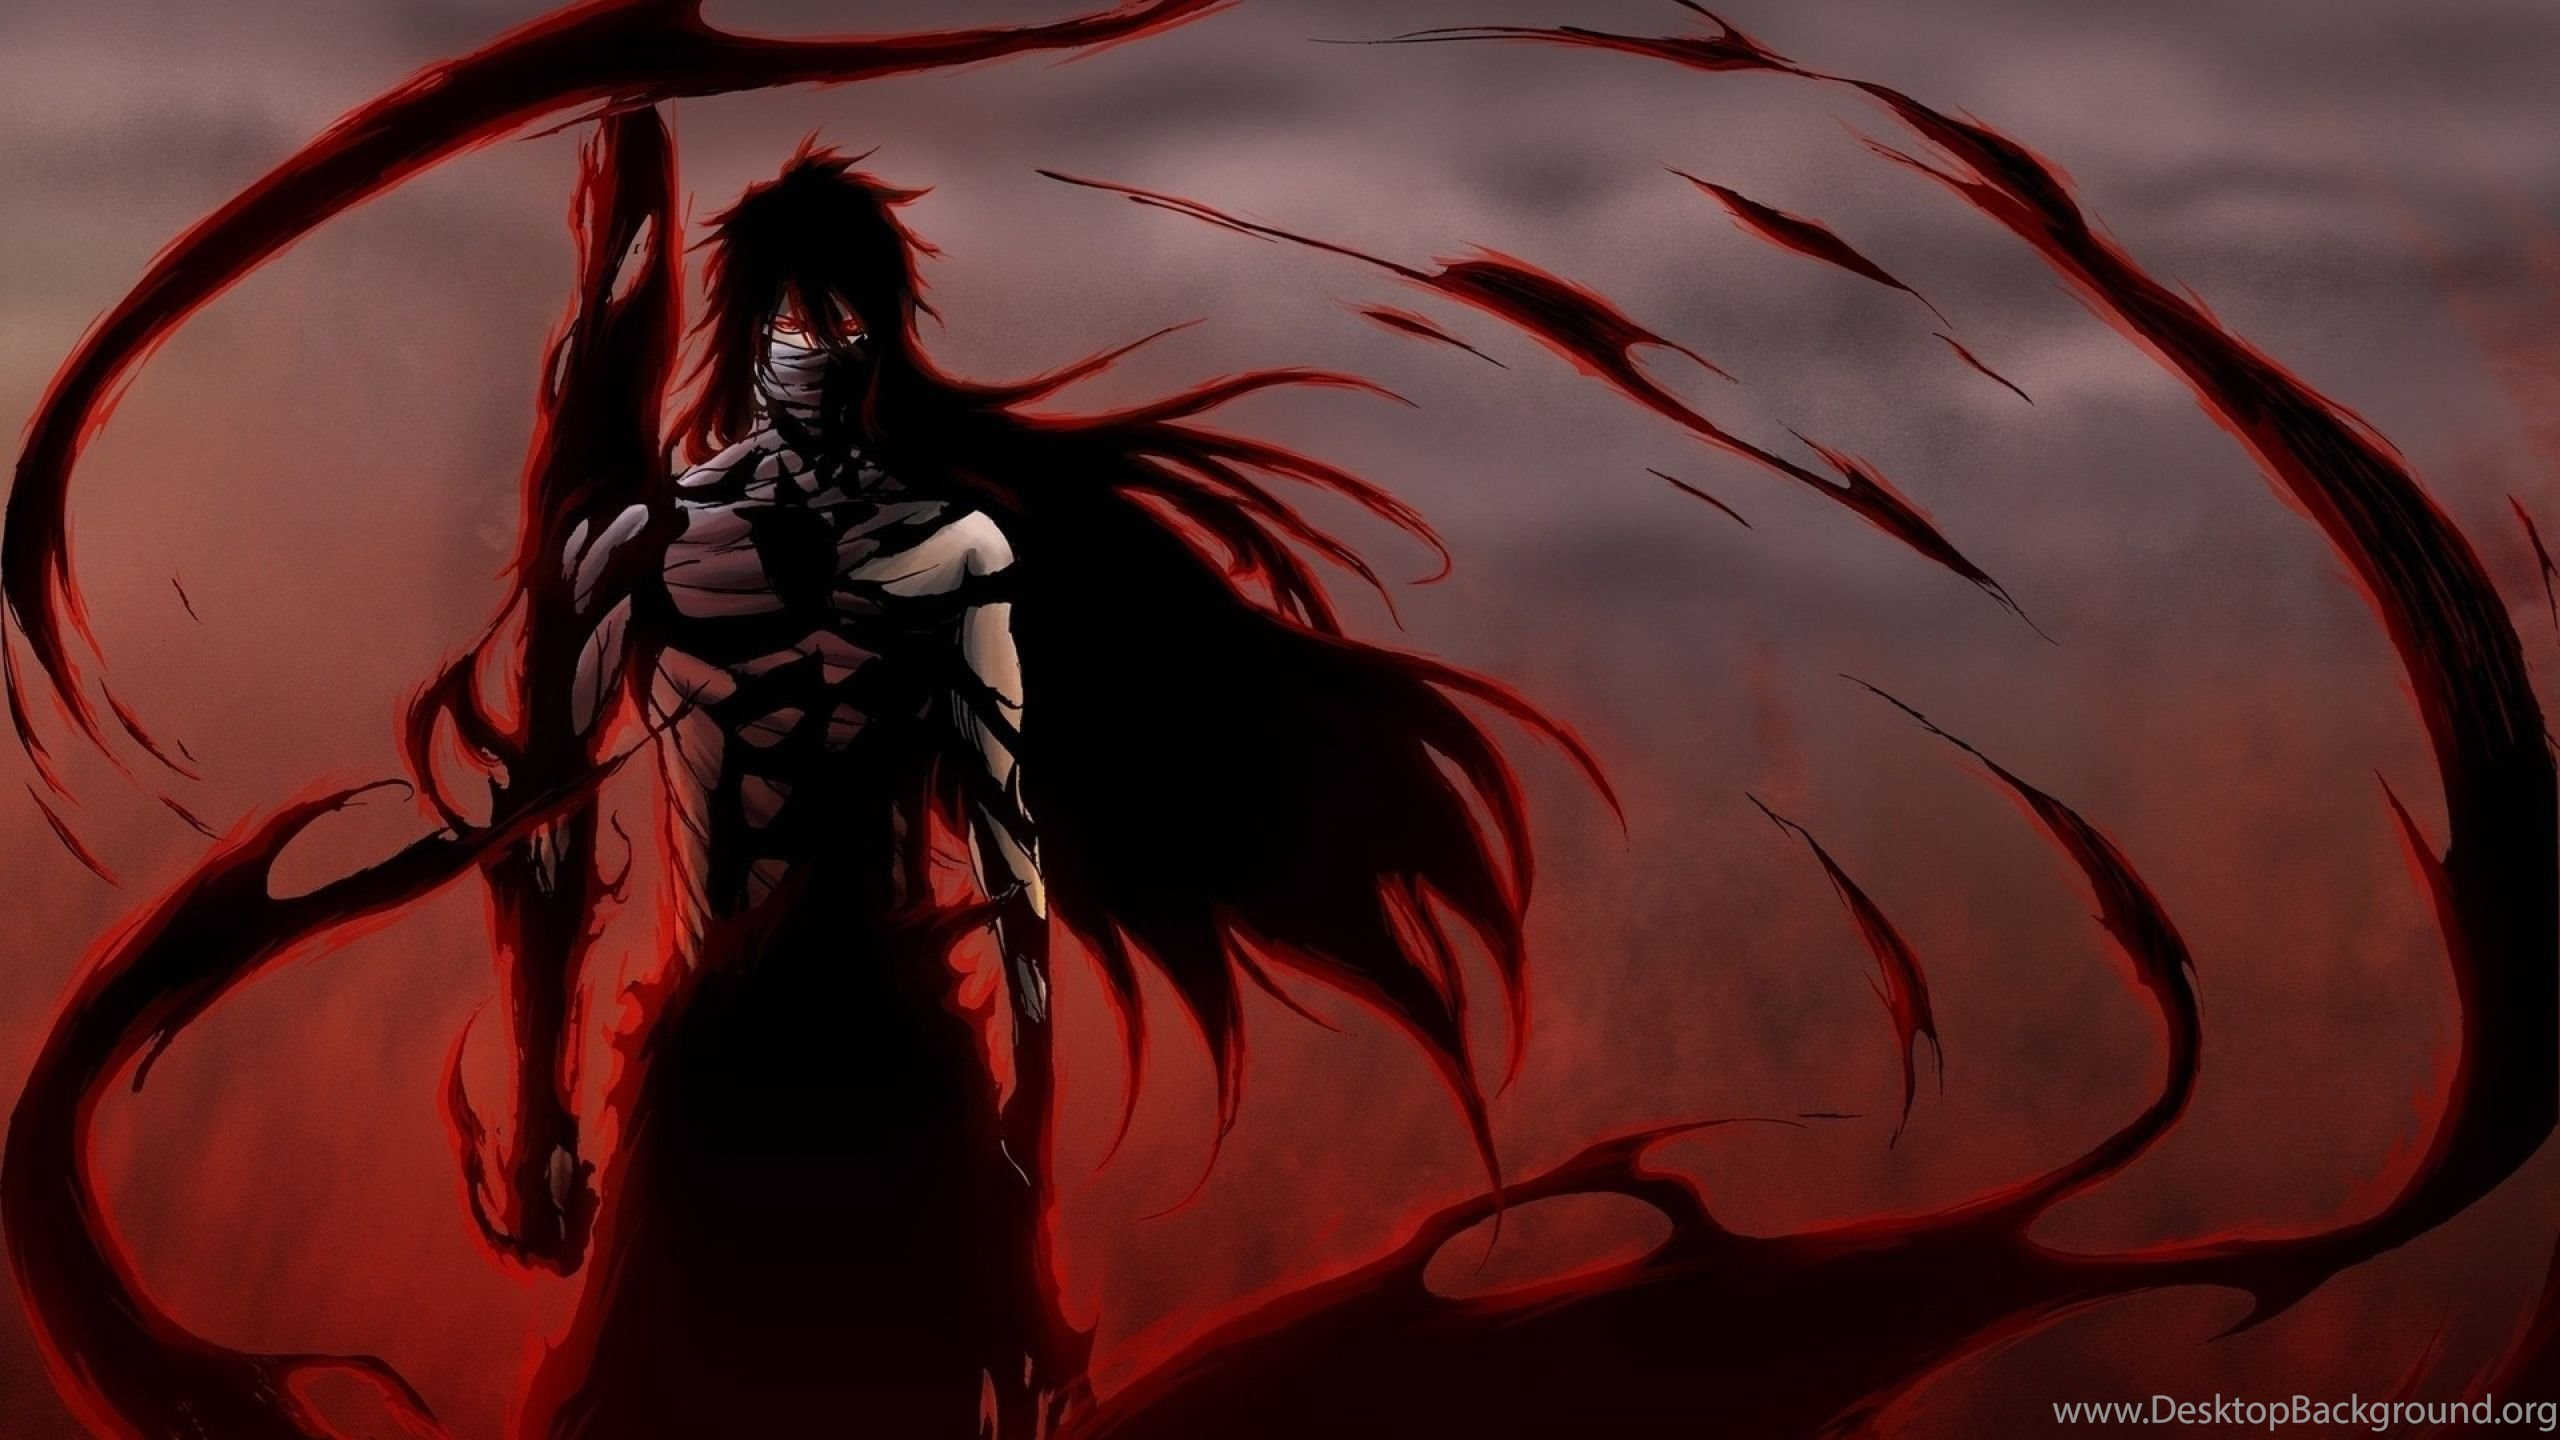 Collection Image Wallpaper Wallpapers Anime 2560x1440